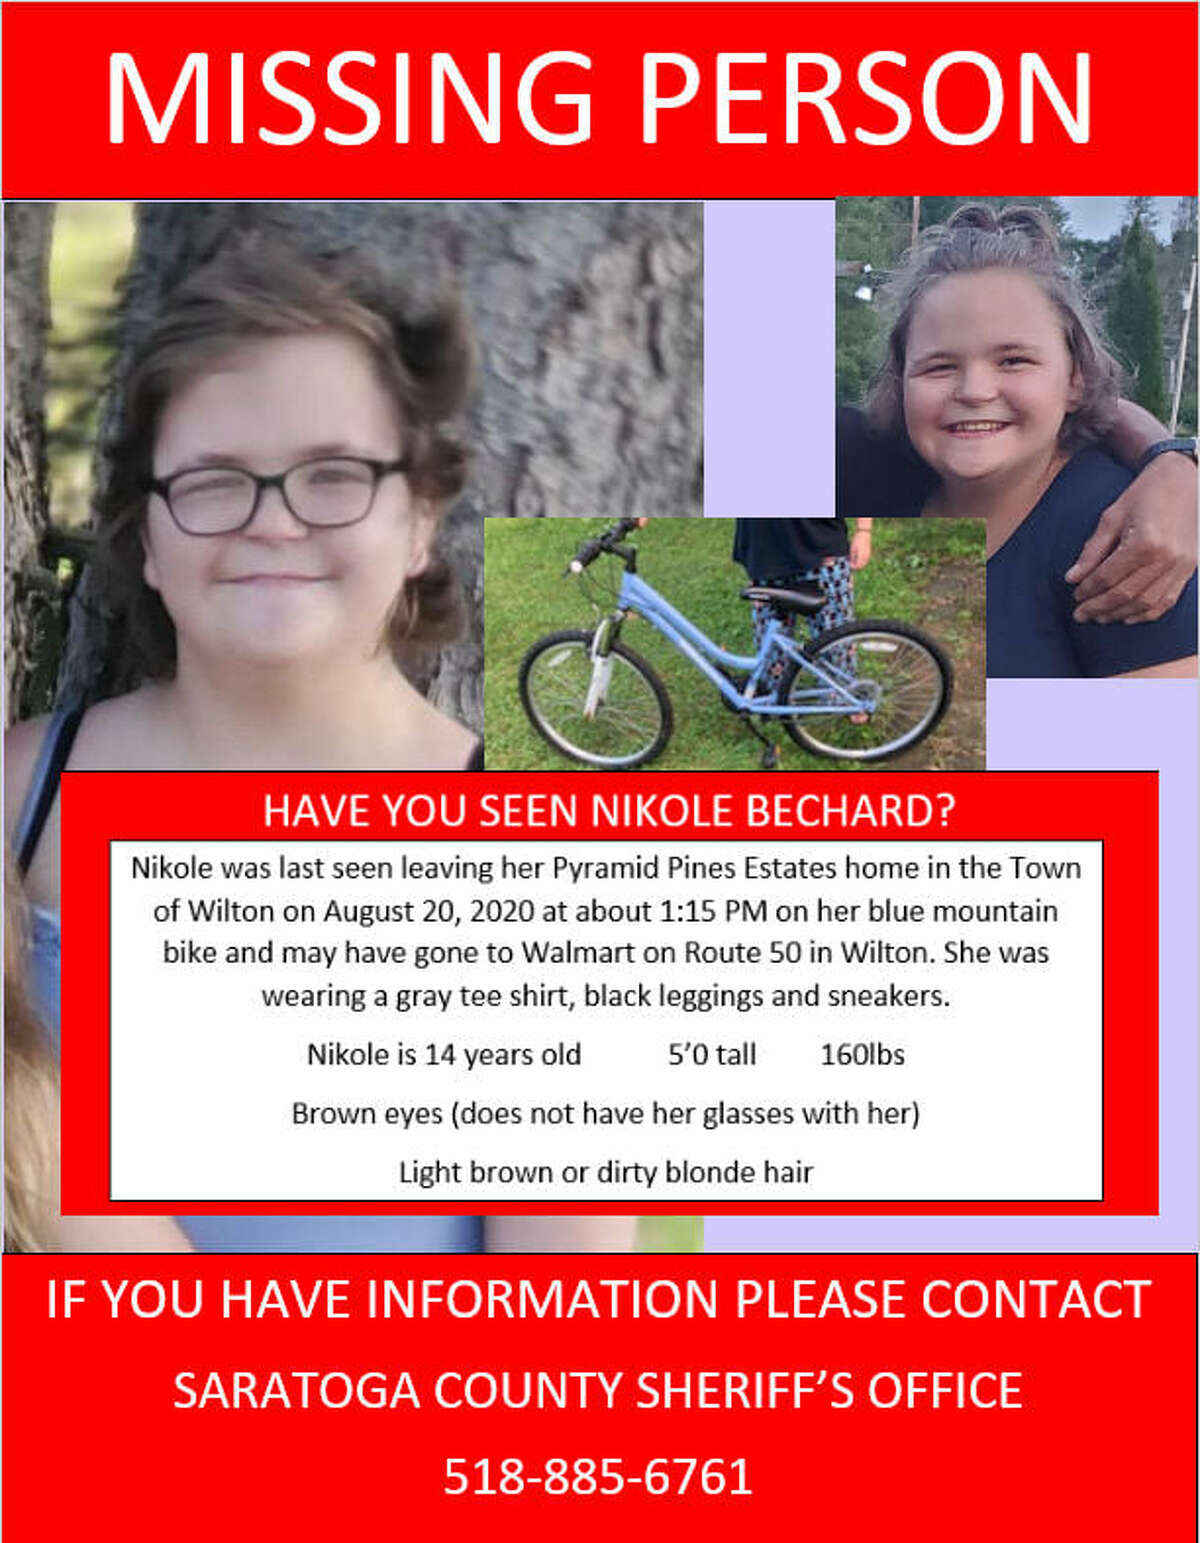 The Saratoga County Sheriff's Office put out this information about Nikole Bechard, 14, who was last seen in Wilton Aug. 20, 2020.